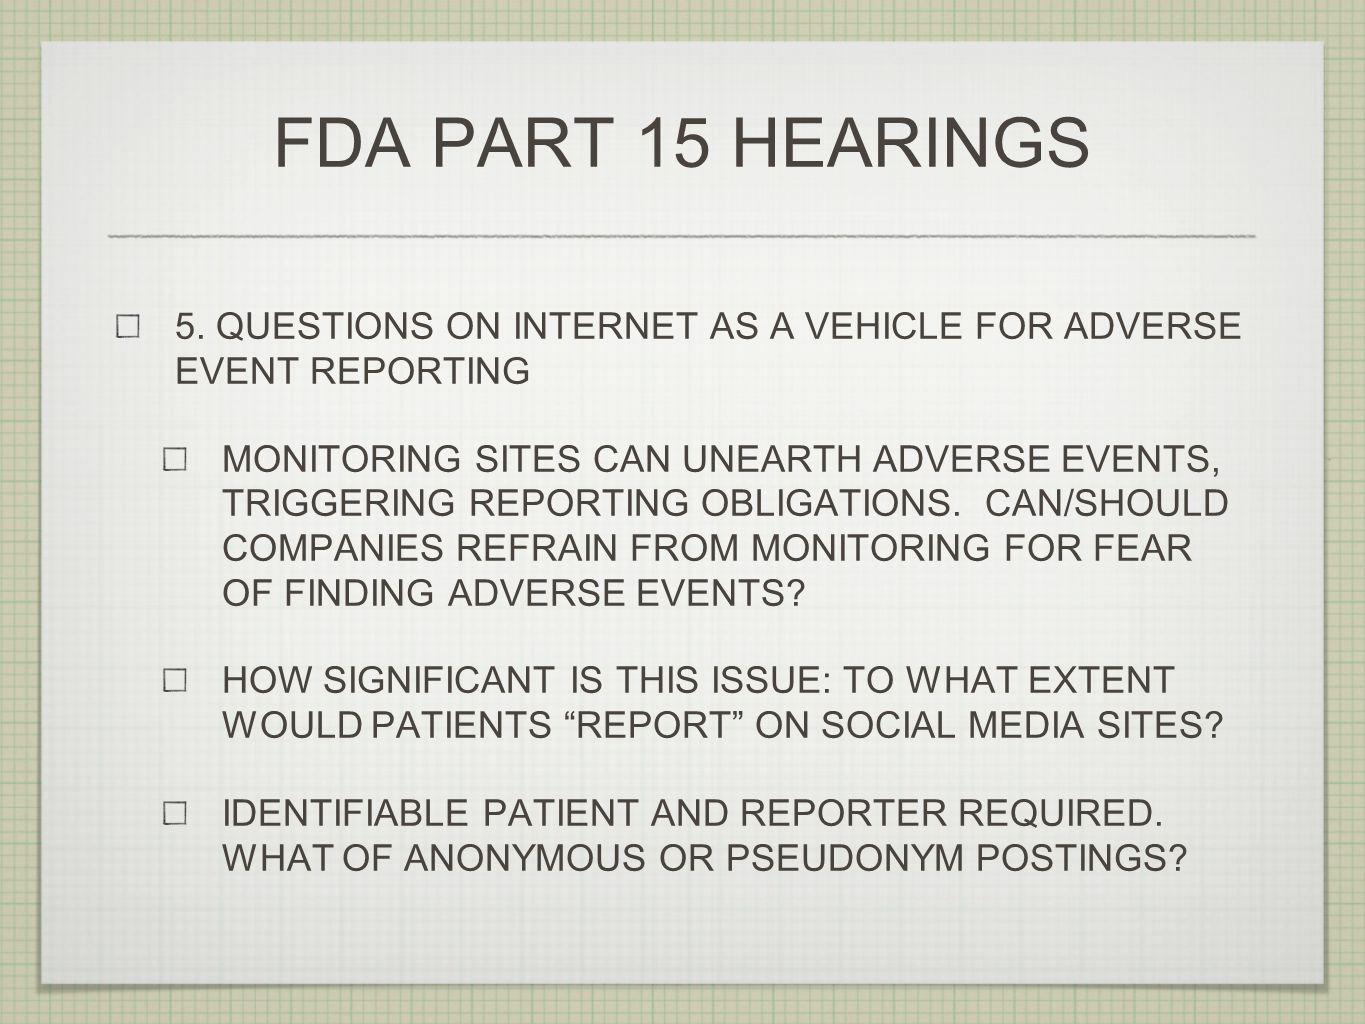 FDA PART 15 HEARINGS 5. QUESTIONS ON INTERNET AS A VEHICLE FOR ADVERSE EVENT REPORTING MONITORING SITES CAN UNEARTH ADVERSE EVENTS, TRIGGERING REPORTI